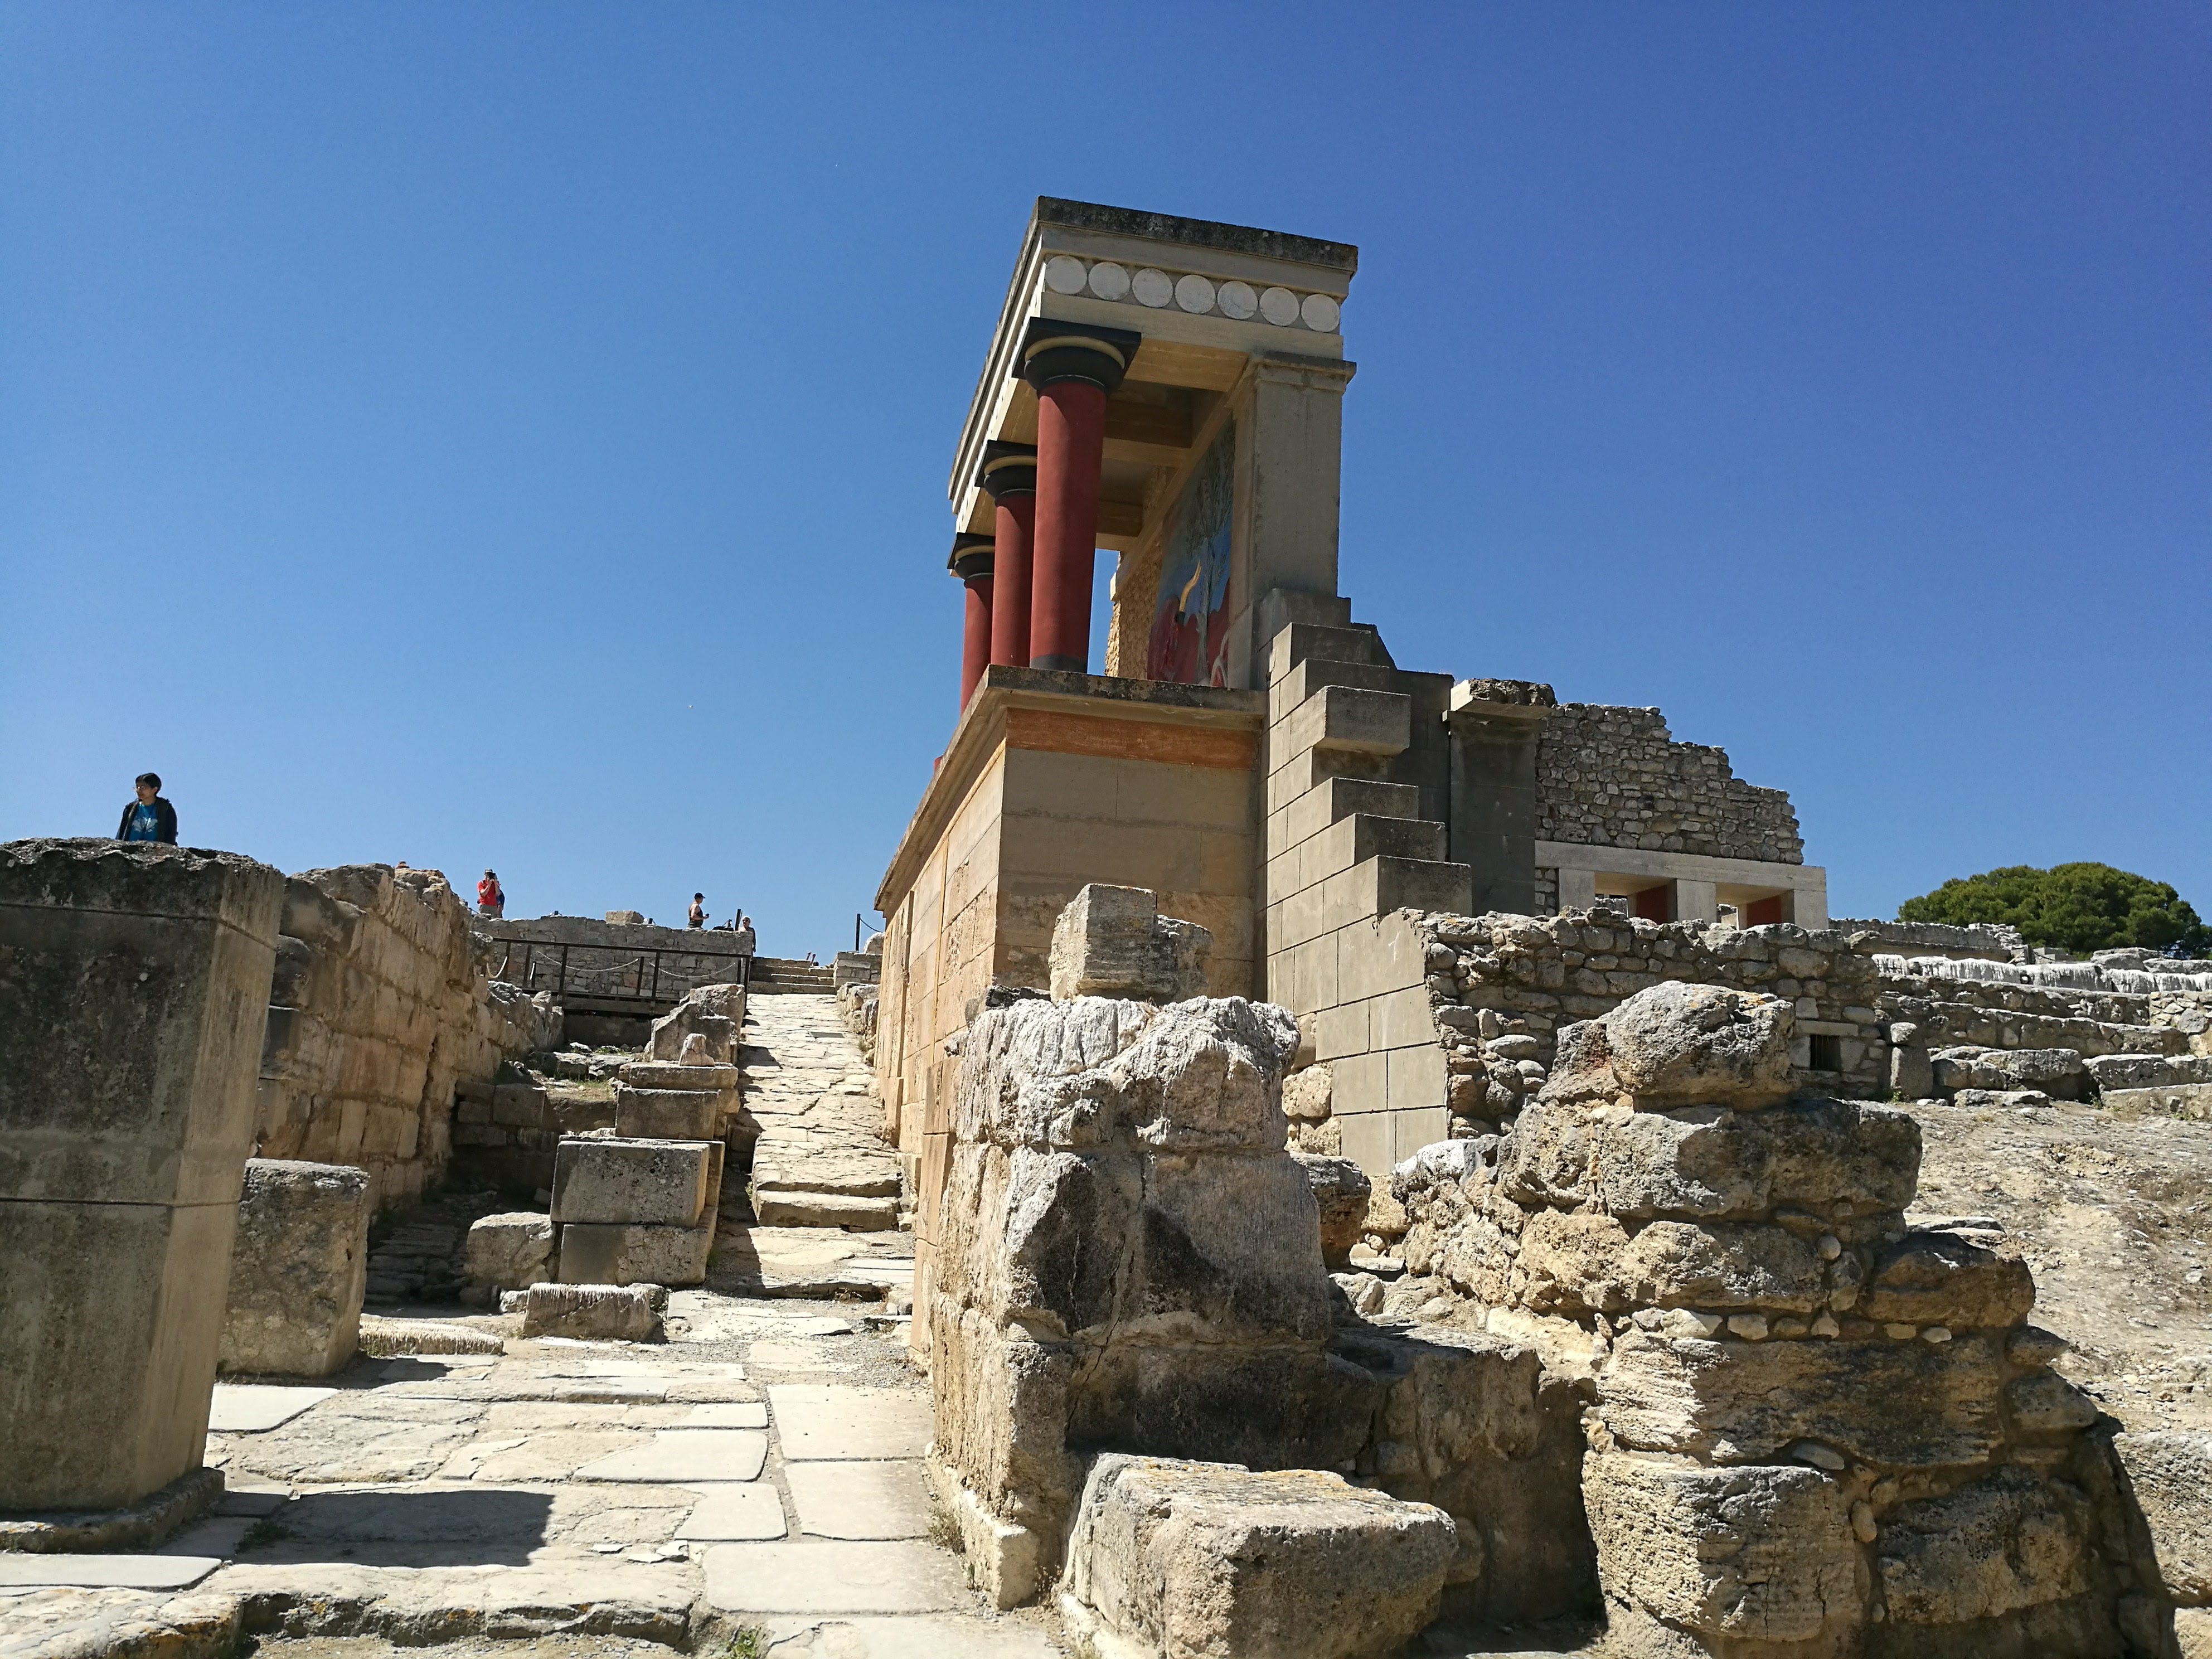 The Palaces of Knossos